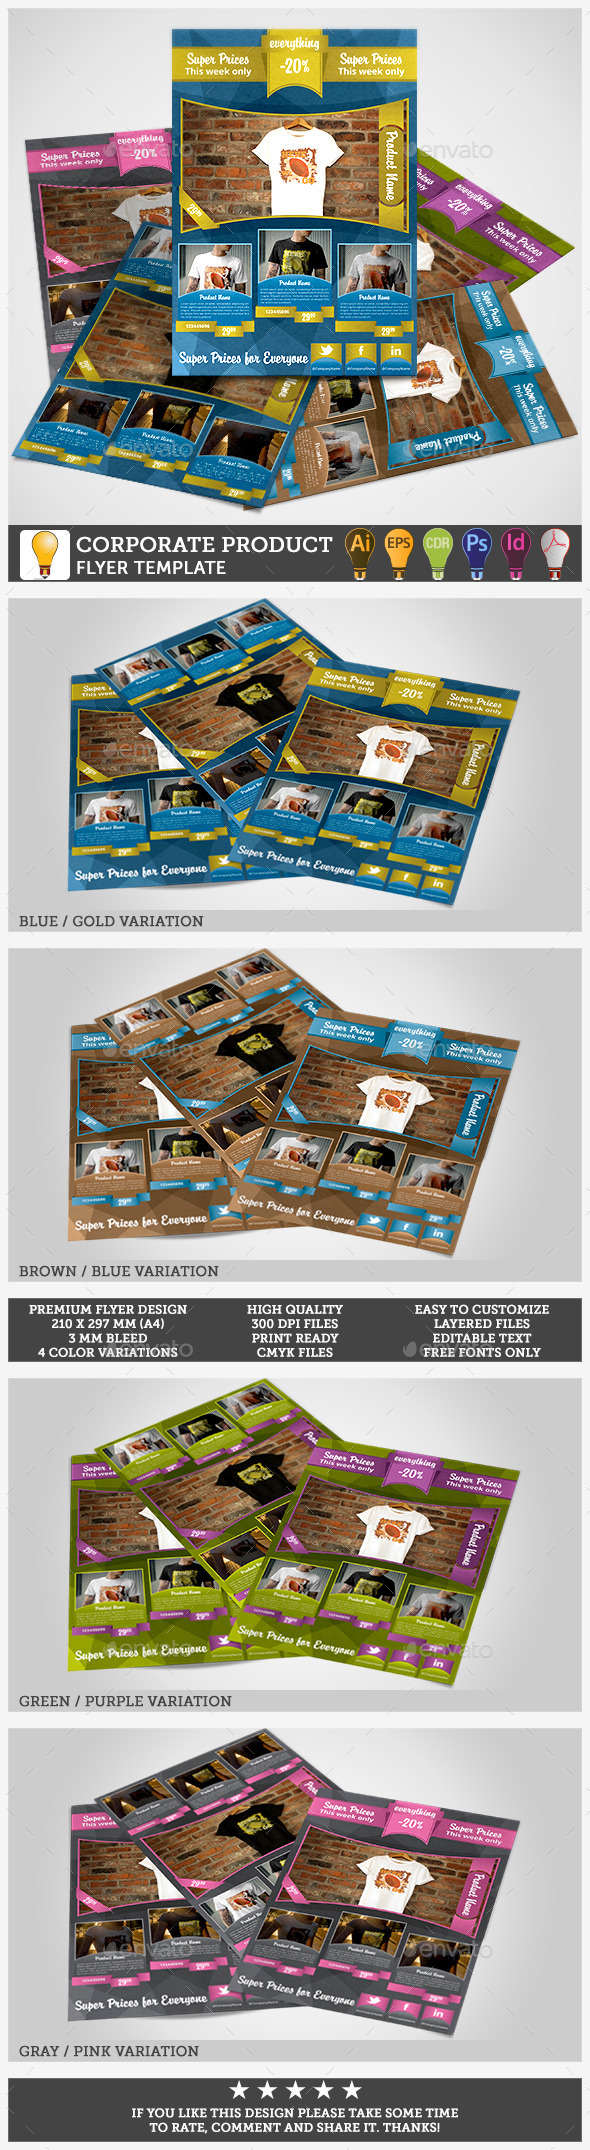 Corporate Product Promotion Flyer Template - Commerce Flyers